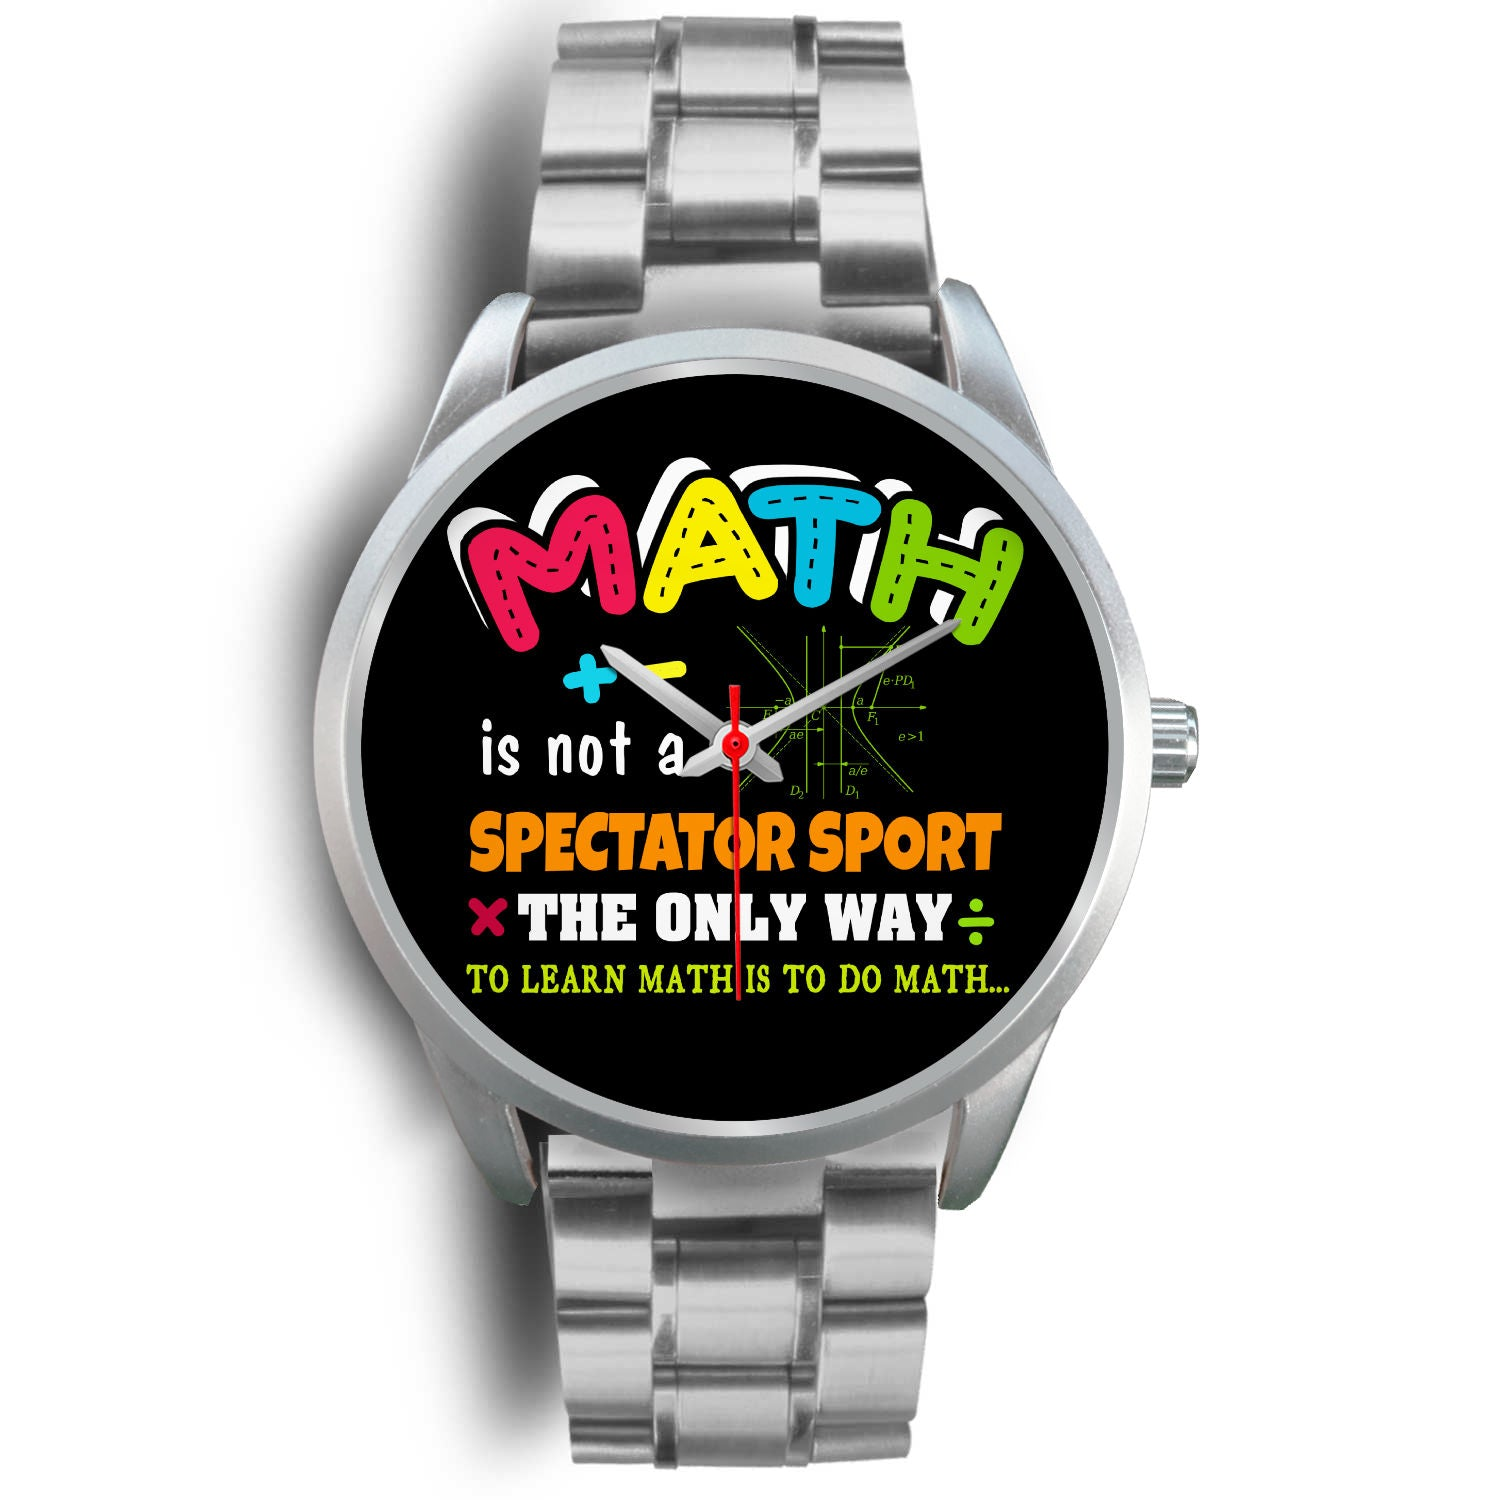 VIRA math silver stainless steel watch for awesome teachers